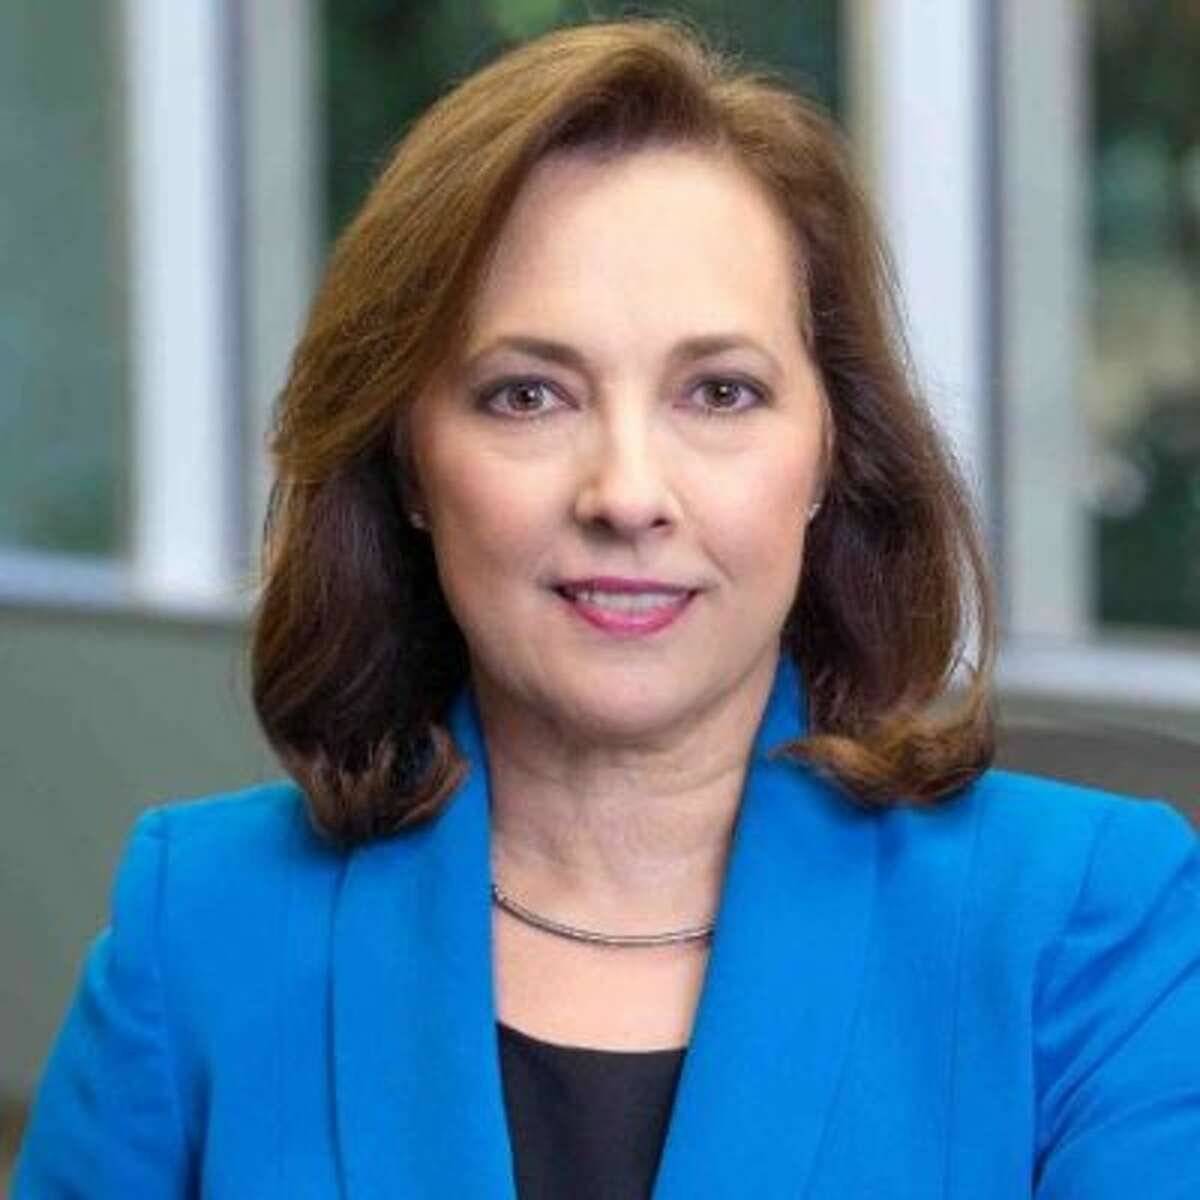 Sallie Rainer, President and chief executive officer Company:Entergy Texas, Inc. The Louisiana State University and Texas A&M University alumna is also very involved in the Interfaith of The Woodlands and the Texas Children's Hospital.